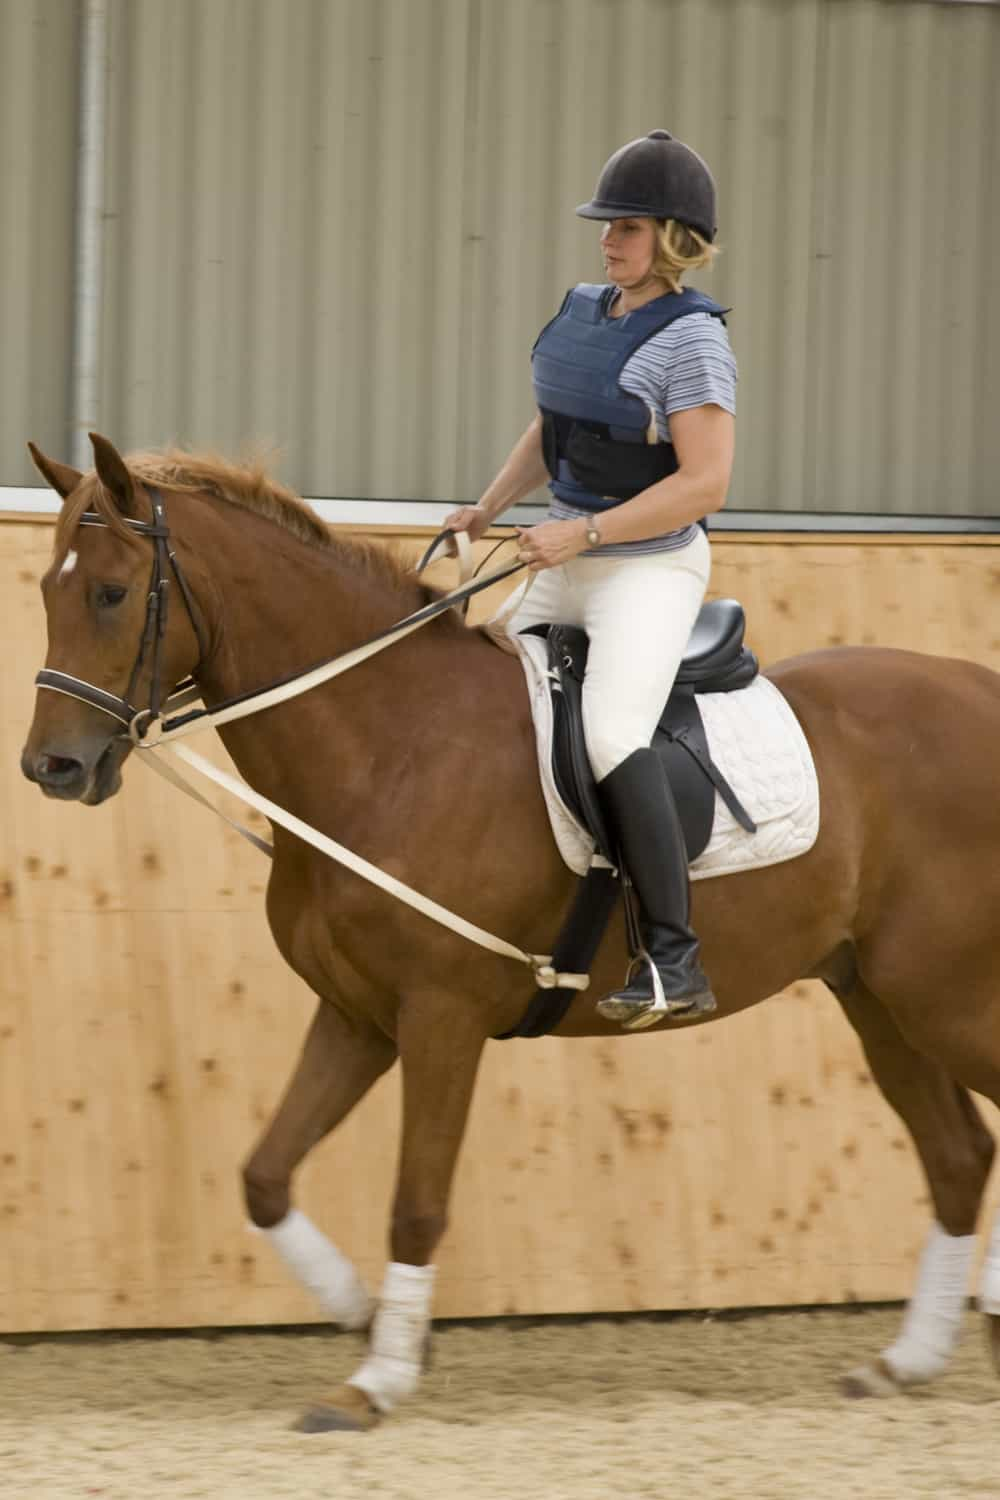 Mistakes to Avoid When Cantering on a Horse